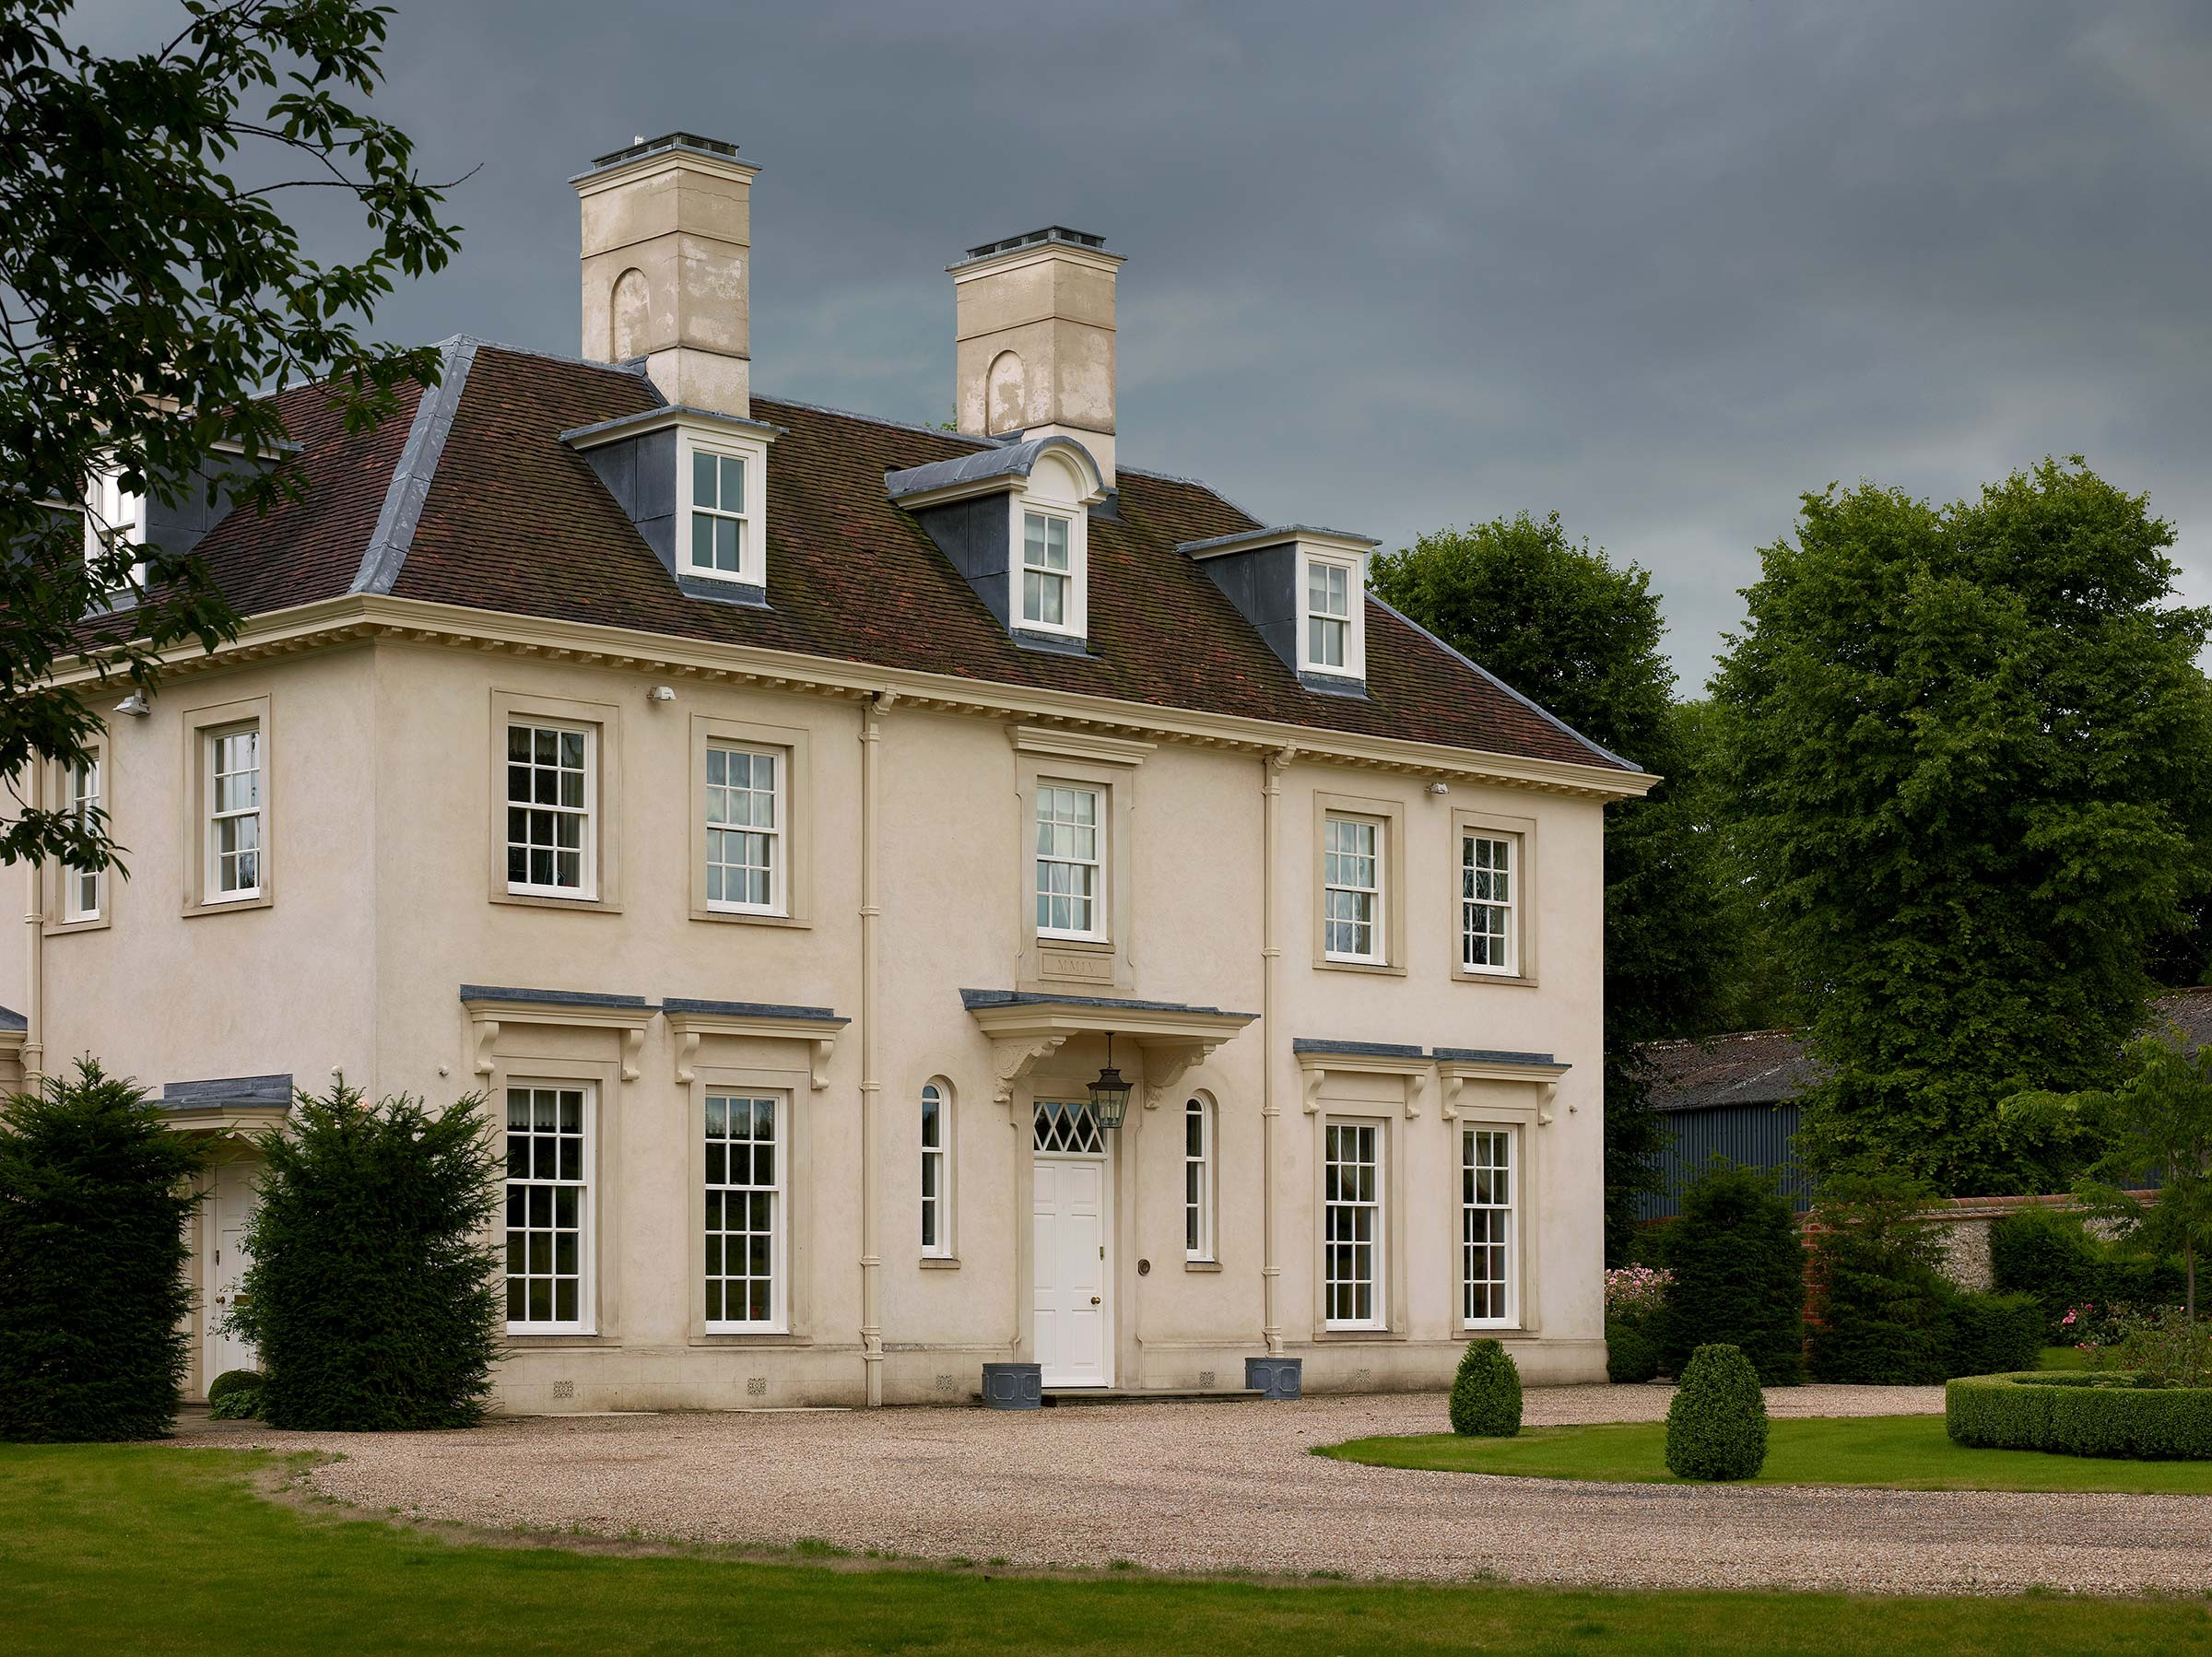 Replacement manor house, Hampshire